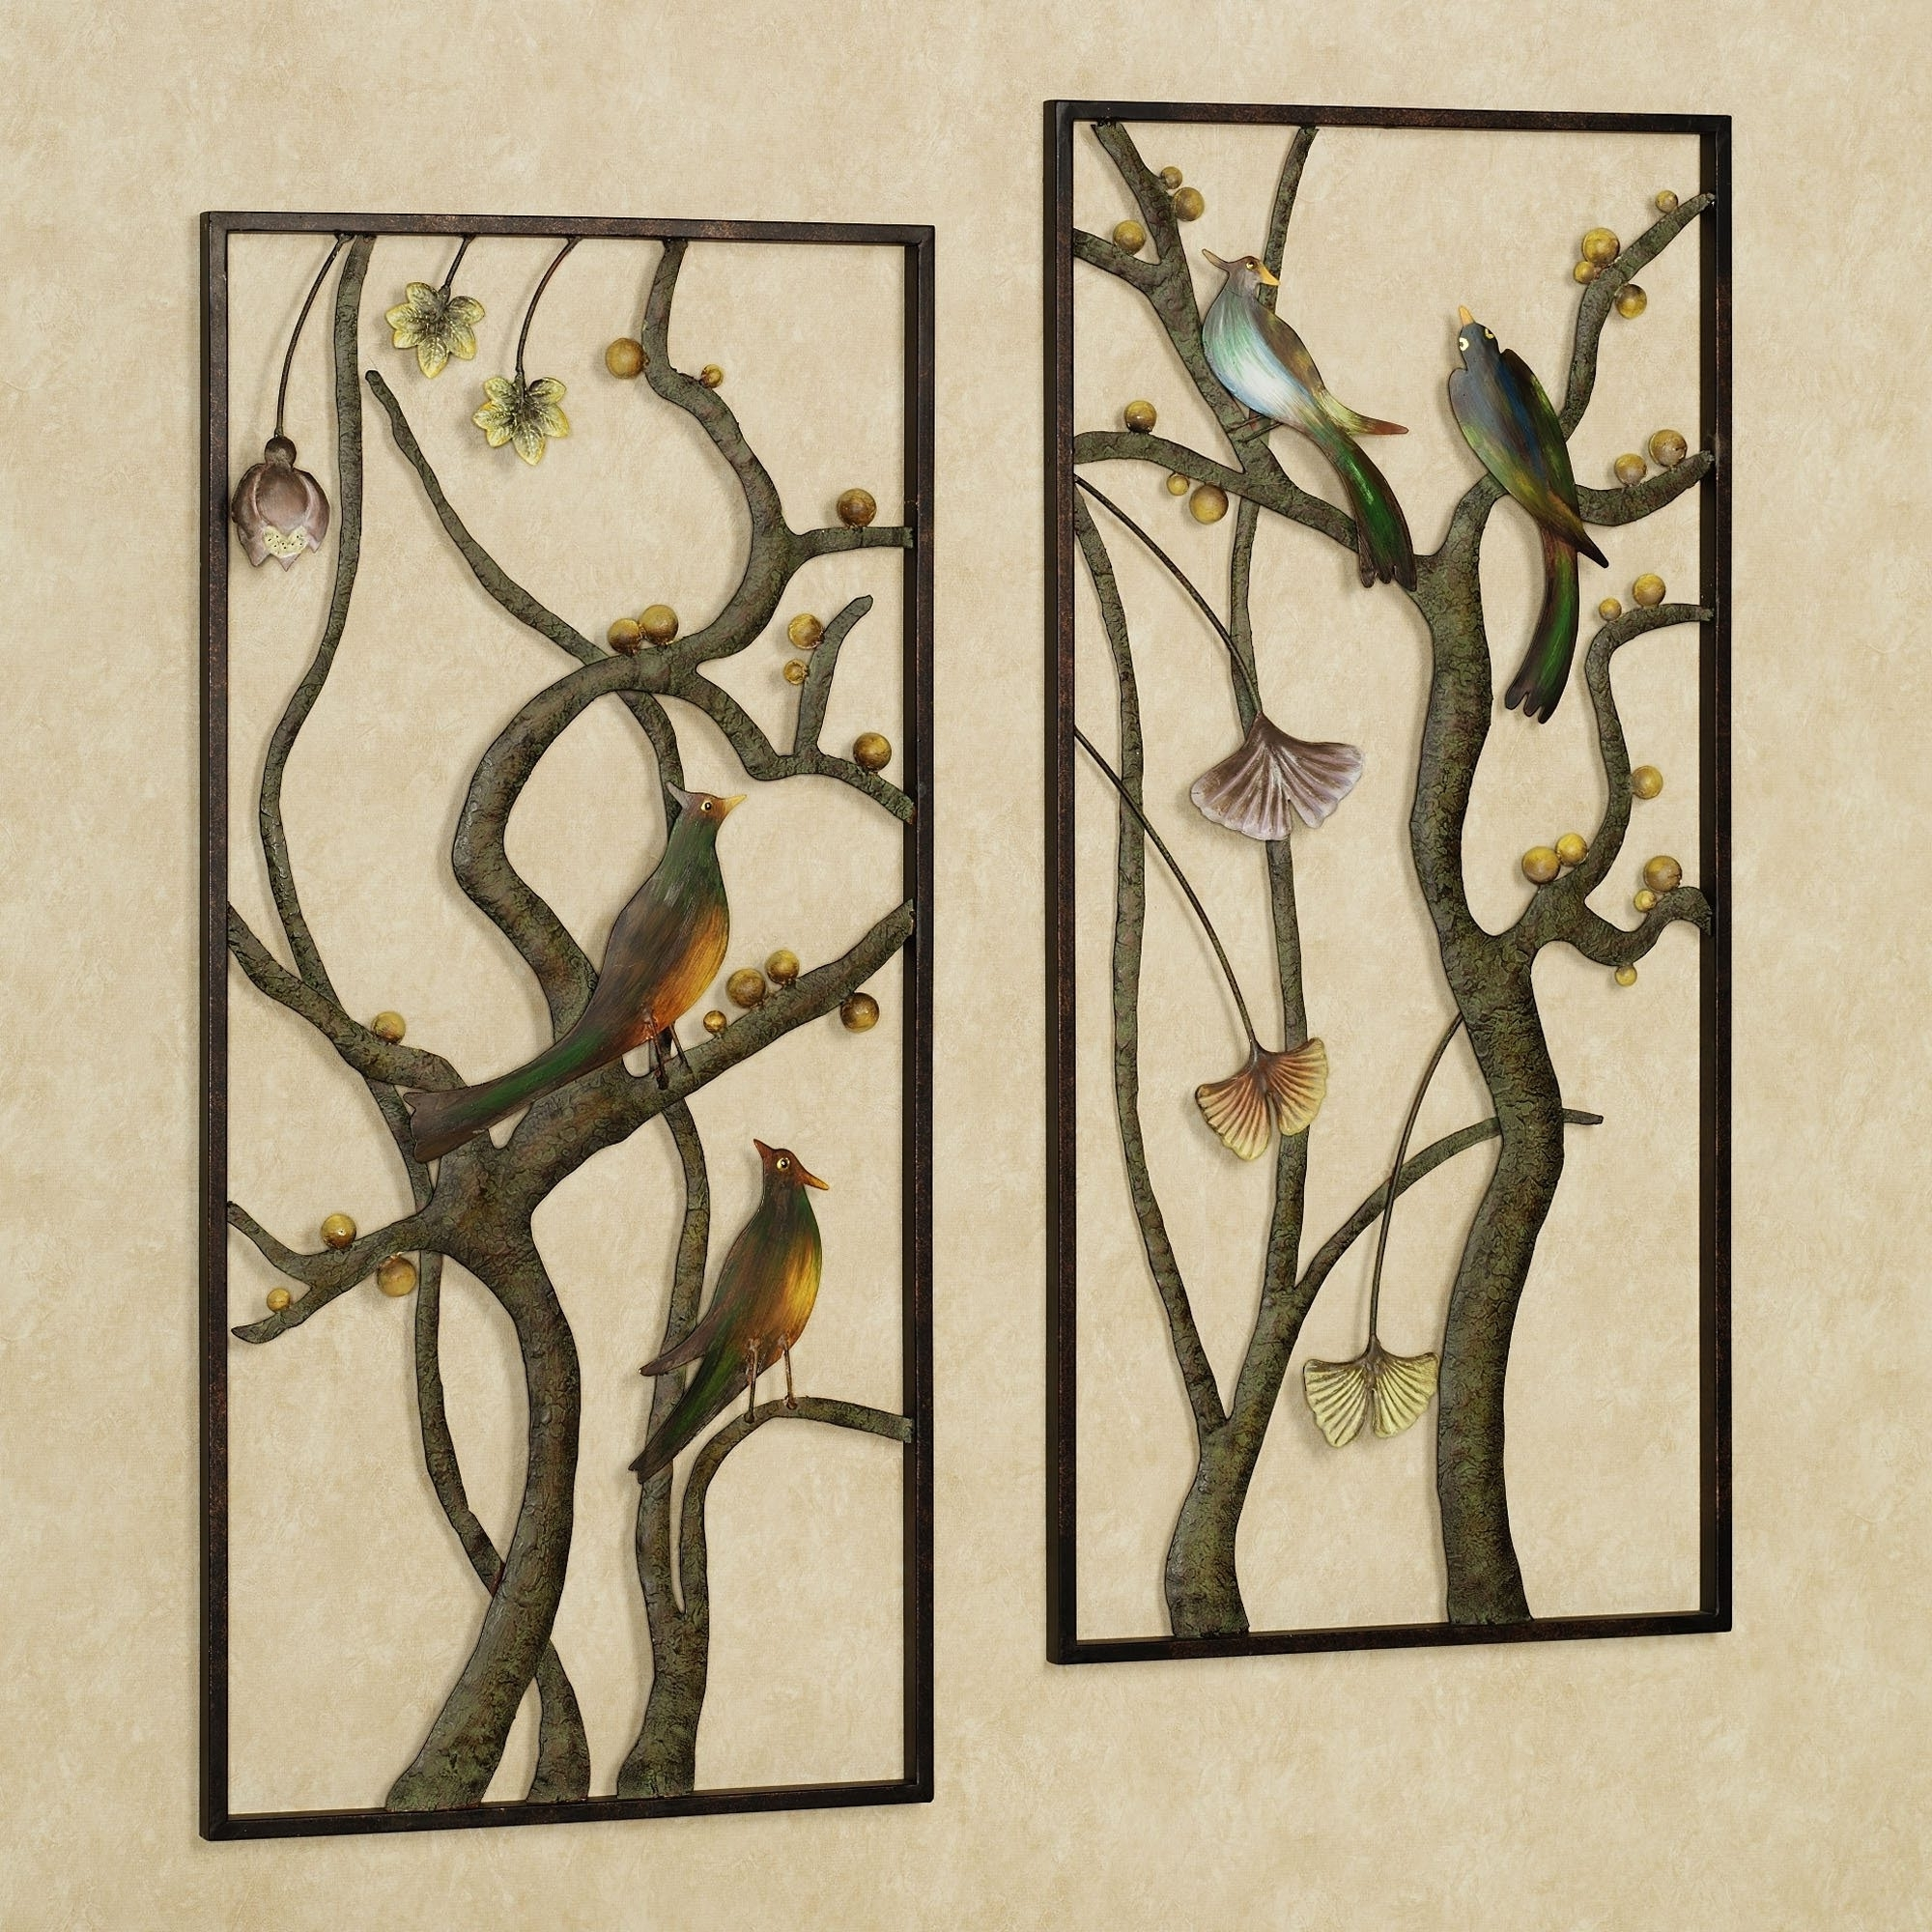 Metal Wall Art From Fabulous Wall Art Hobby Lobby – Wall Decoration In Newest Hobby Lobby Metal Wall Art (View 3 of 15)